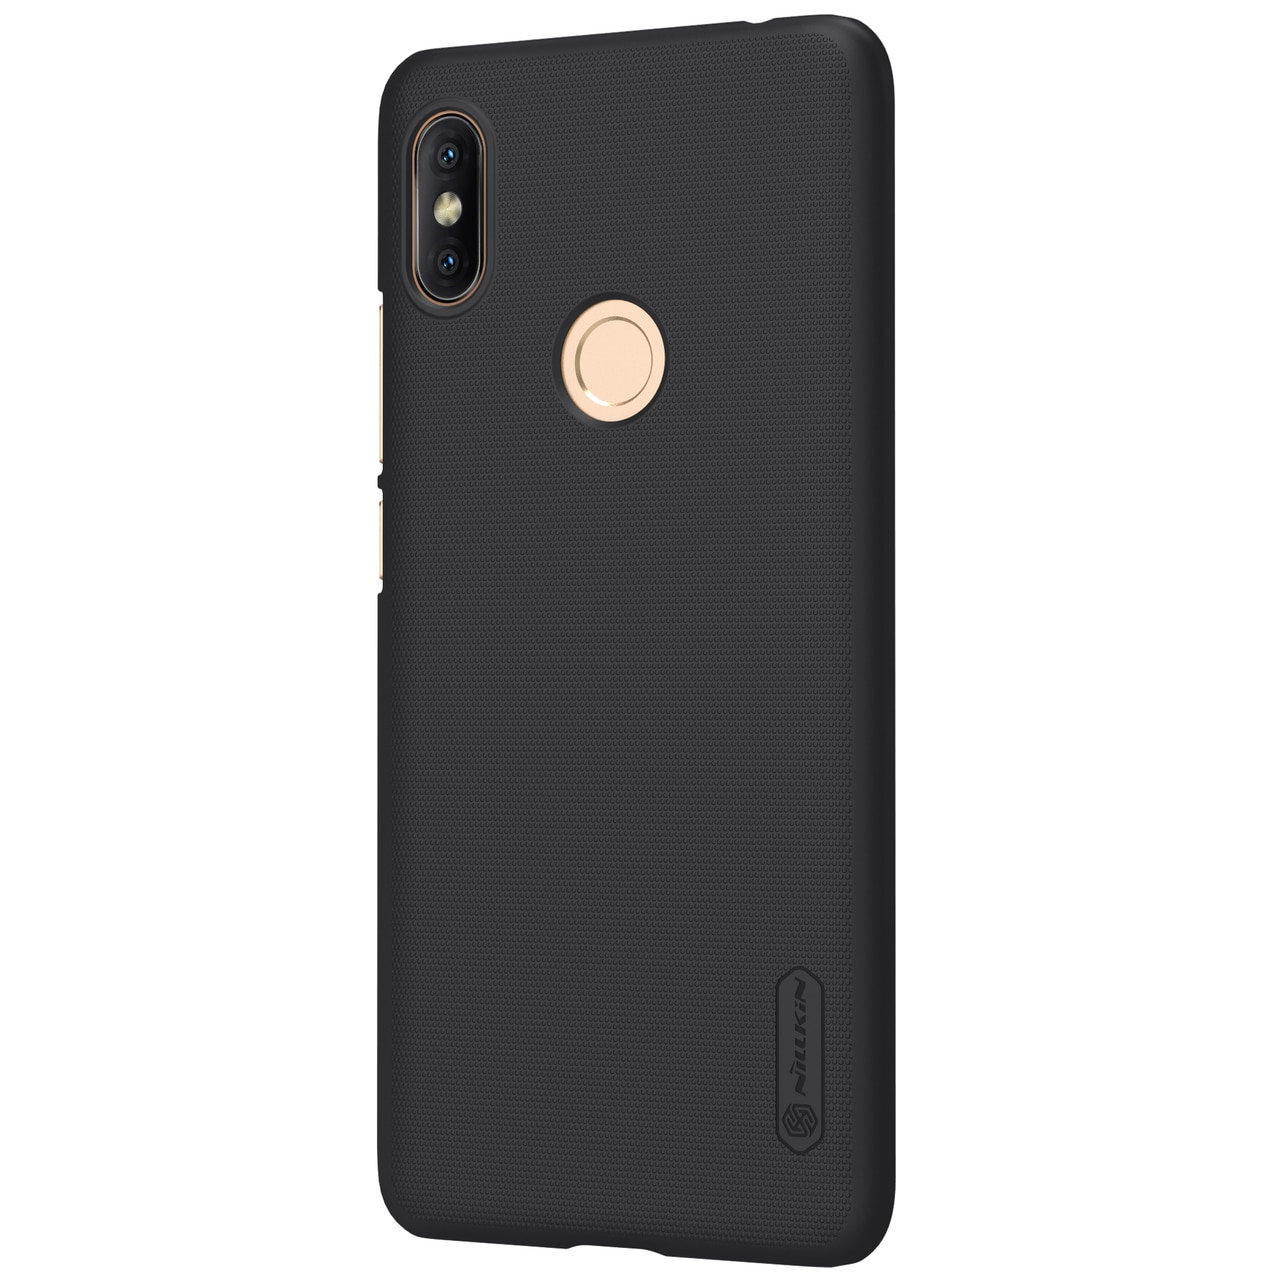 Redmi S2 Frosted Shield Hard Back Cover by Nillkin - Black